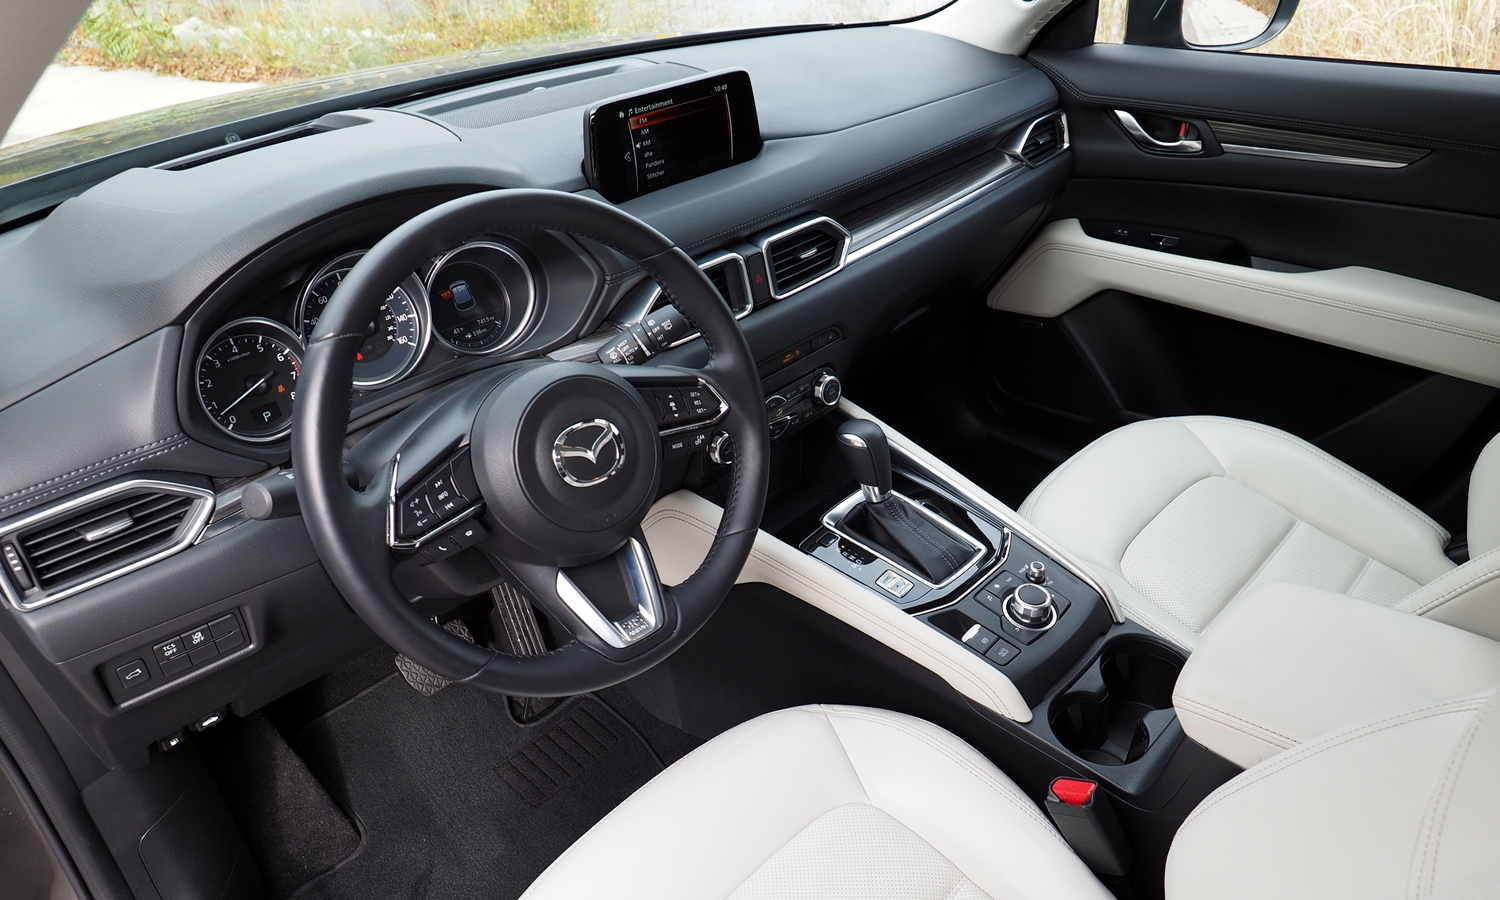 Mazda CX-5 Photos: 2017 Mazda CX-5 interior